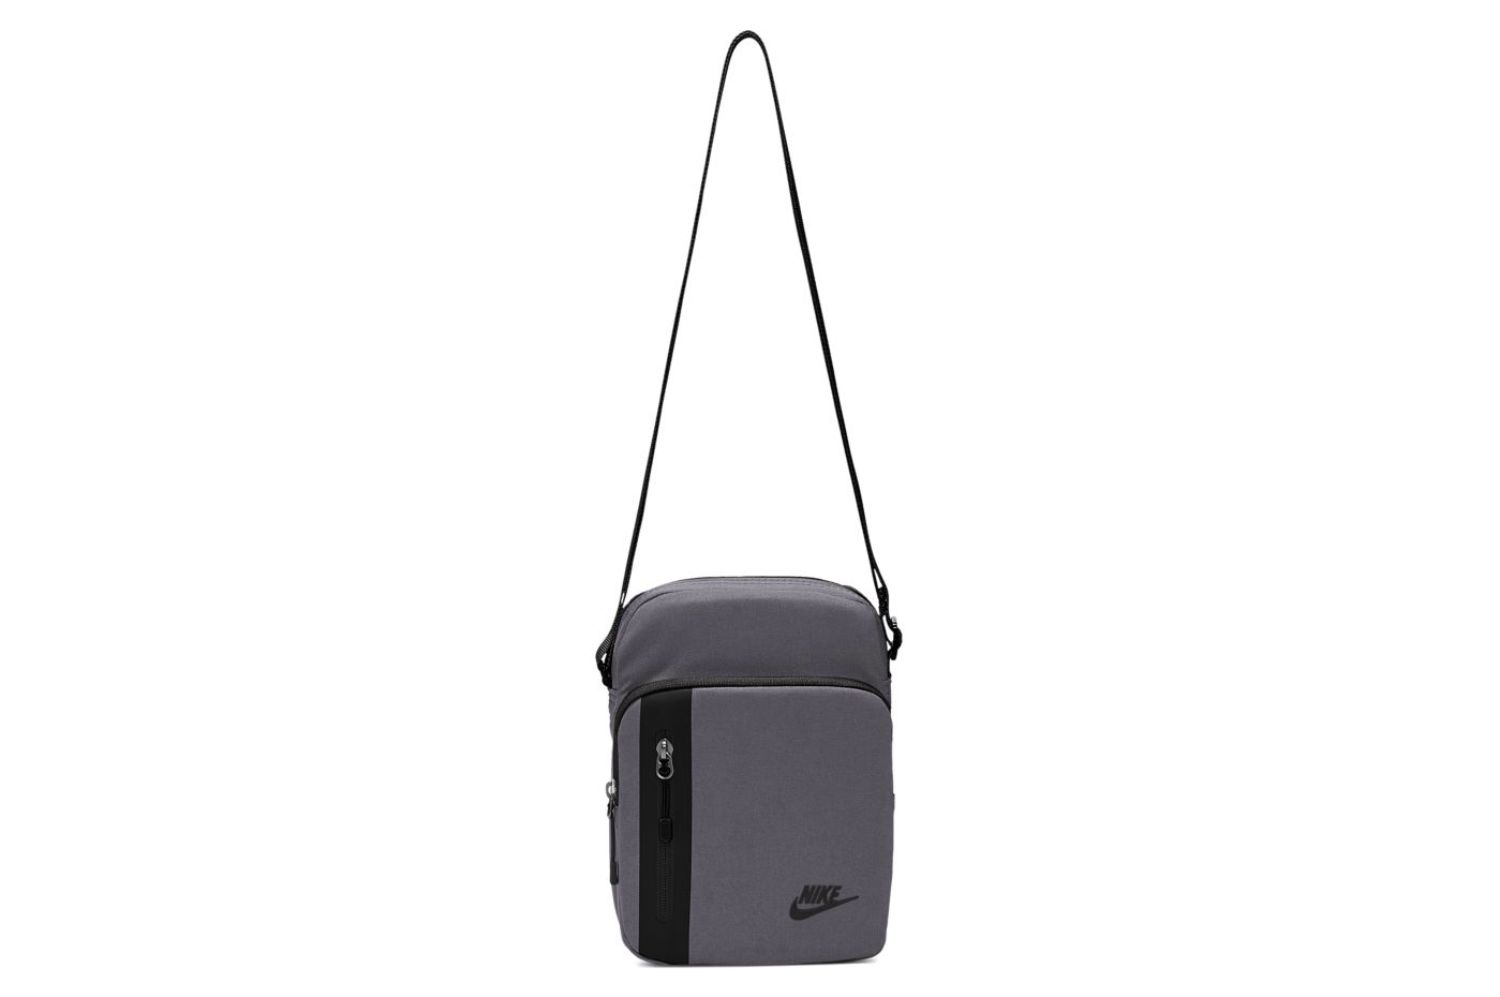 Tech Small Items Cross-Body Bag